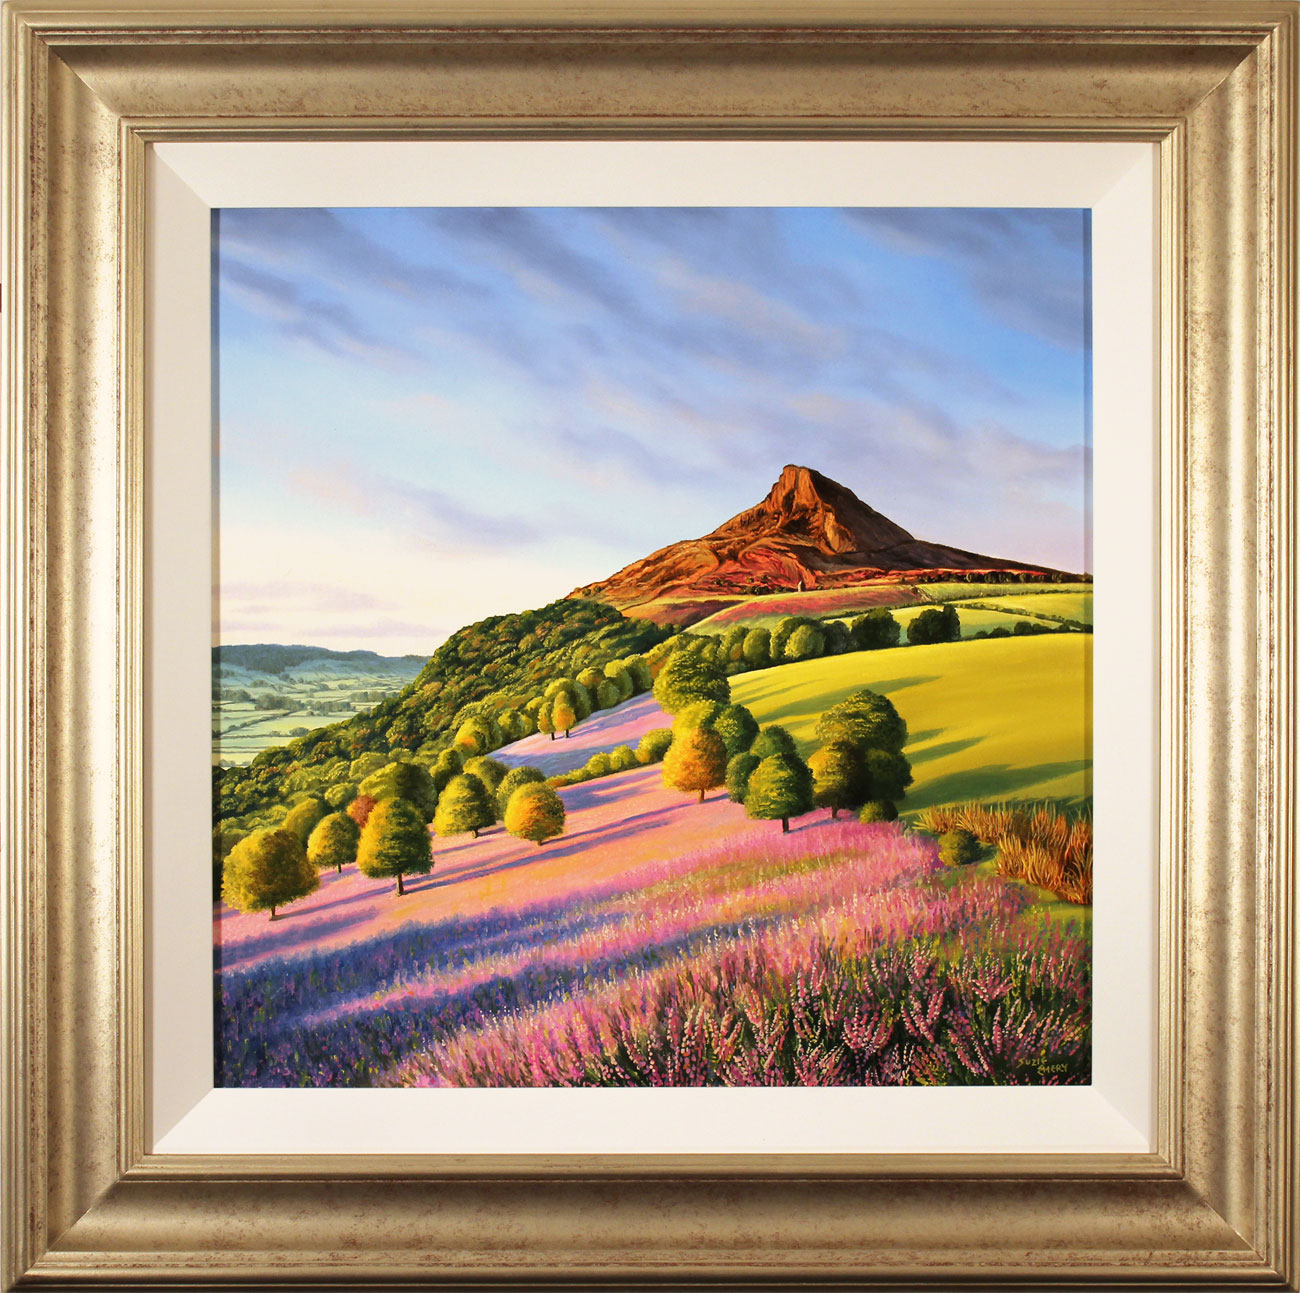 Suzie Emery, Original acrylic painting on board, Roseberry Topping. Click to enlarge